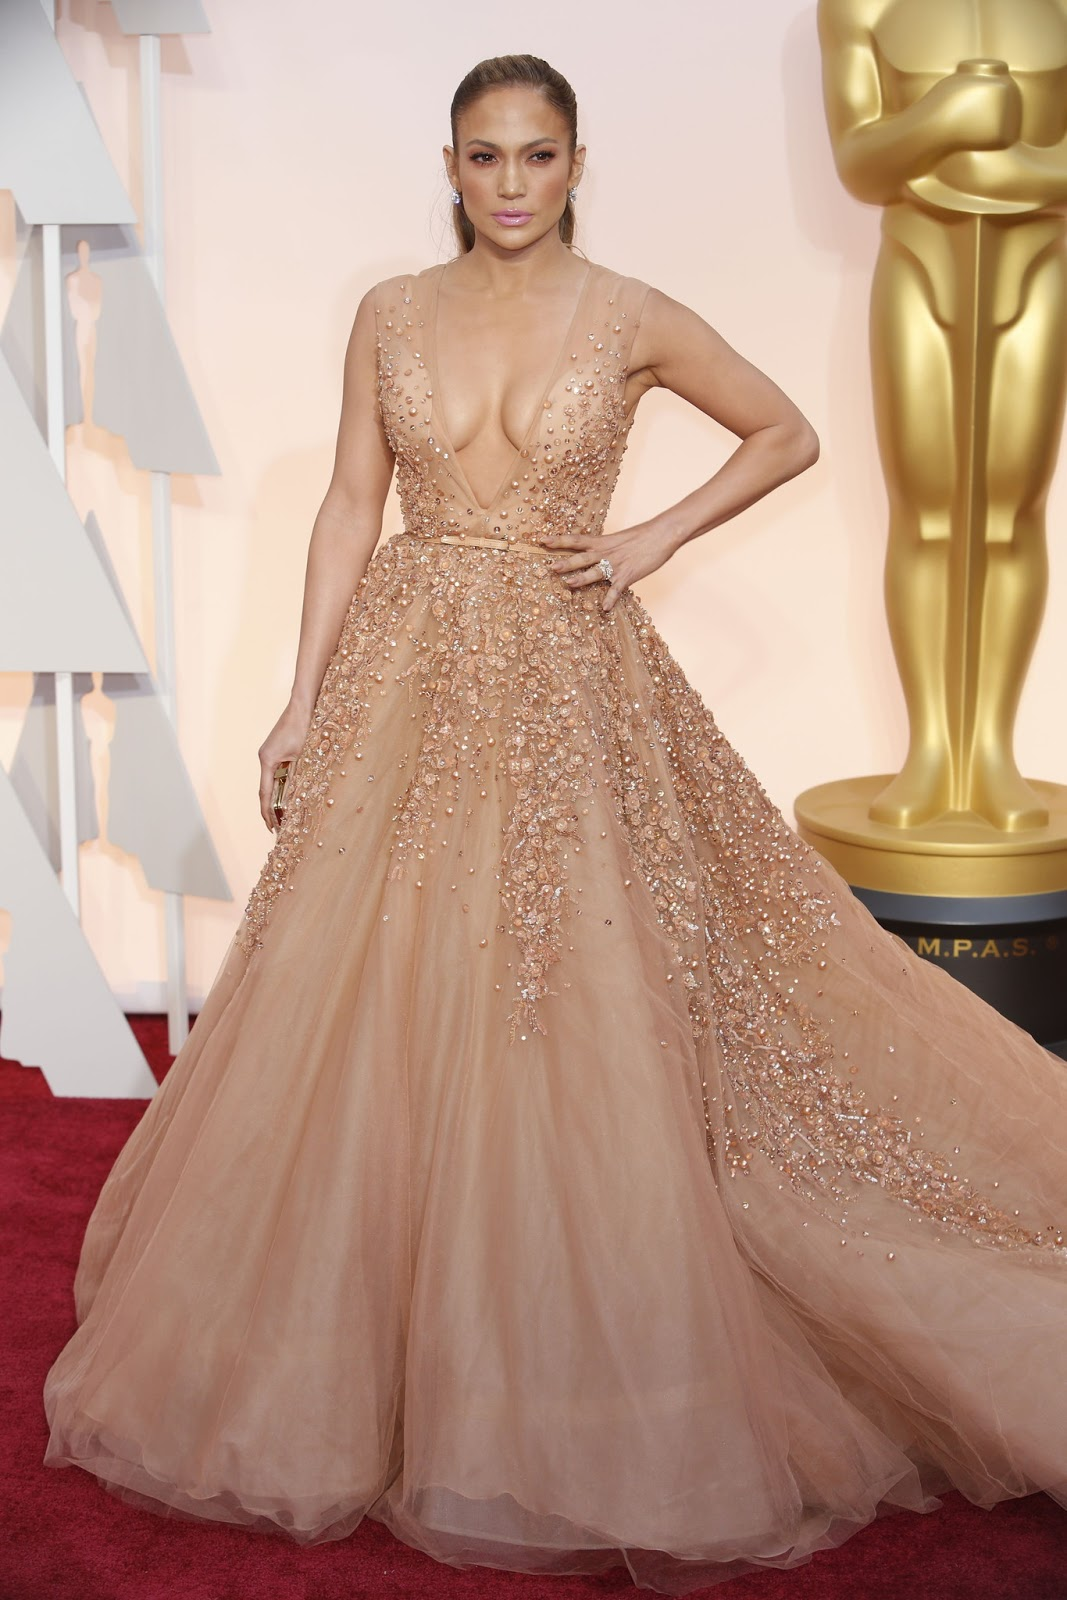 Jennifer Lopez in Elie Saab at the Oscars 2015